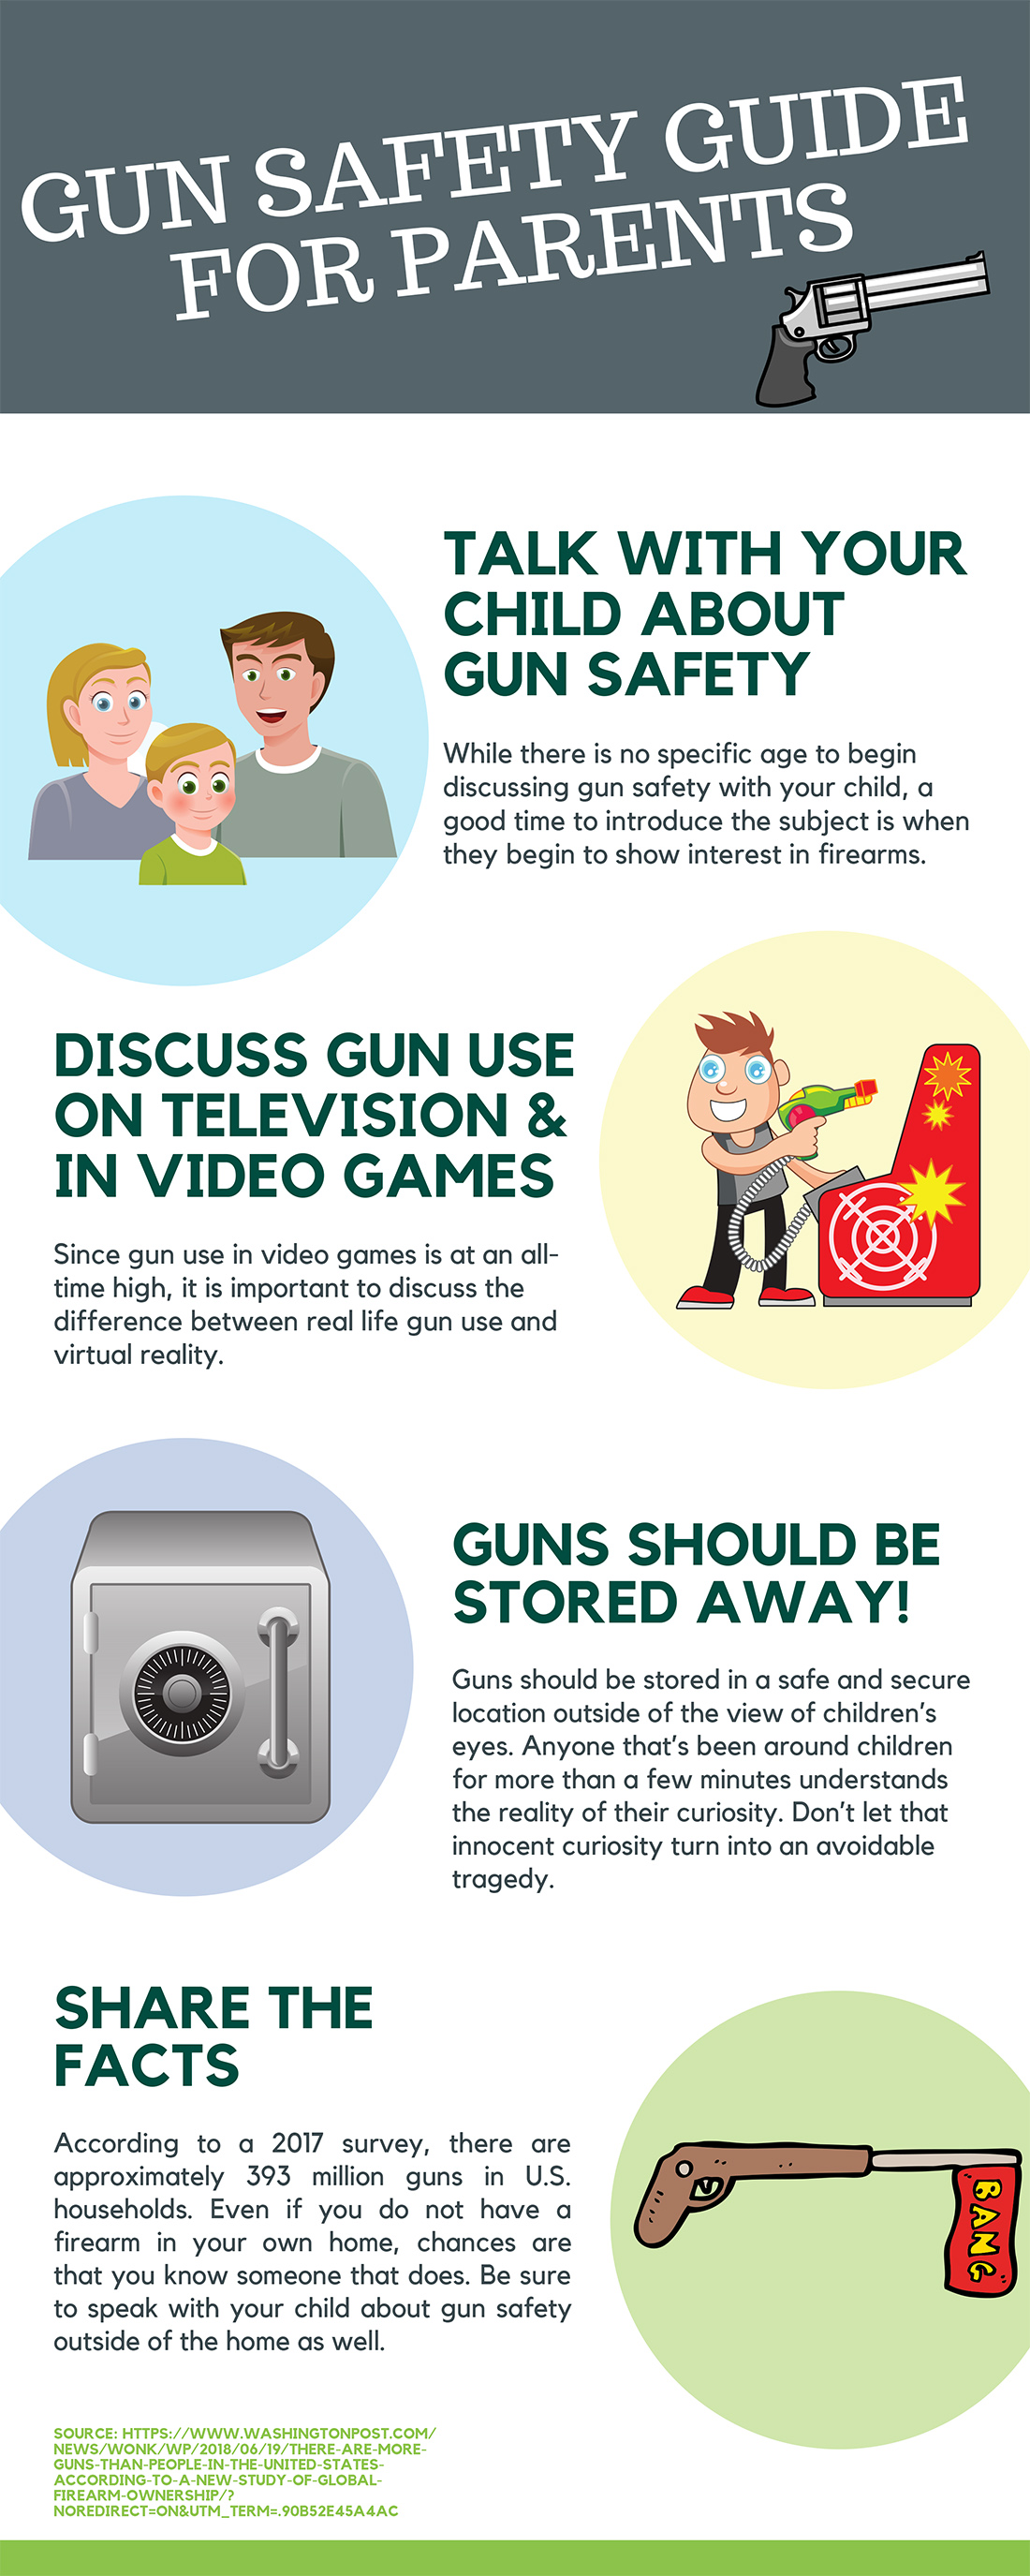 gun safety guide for parents